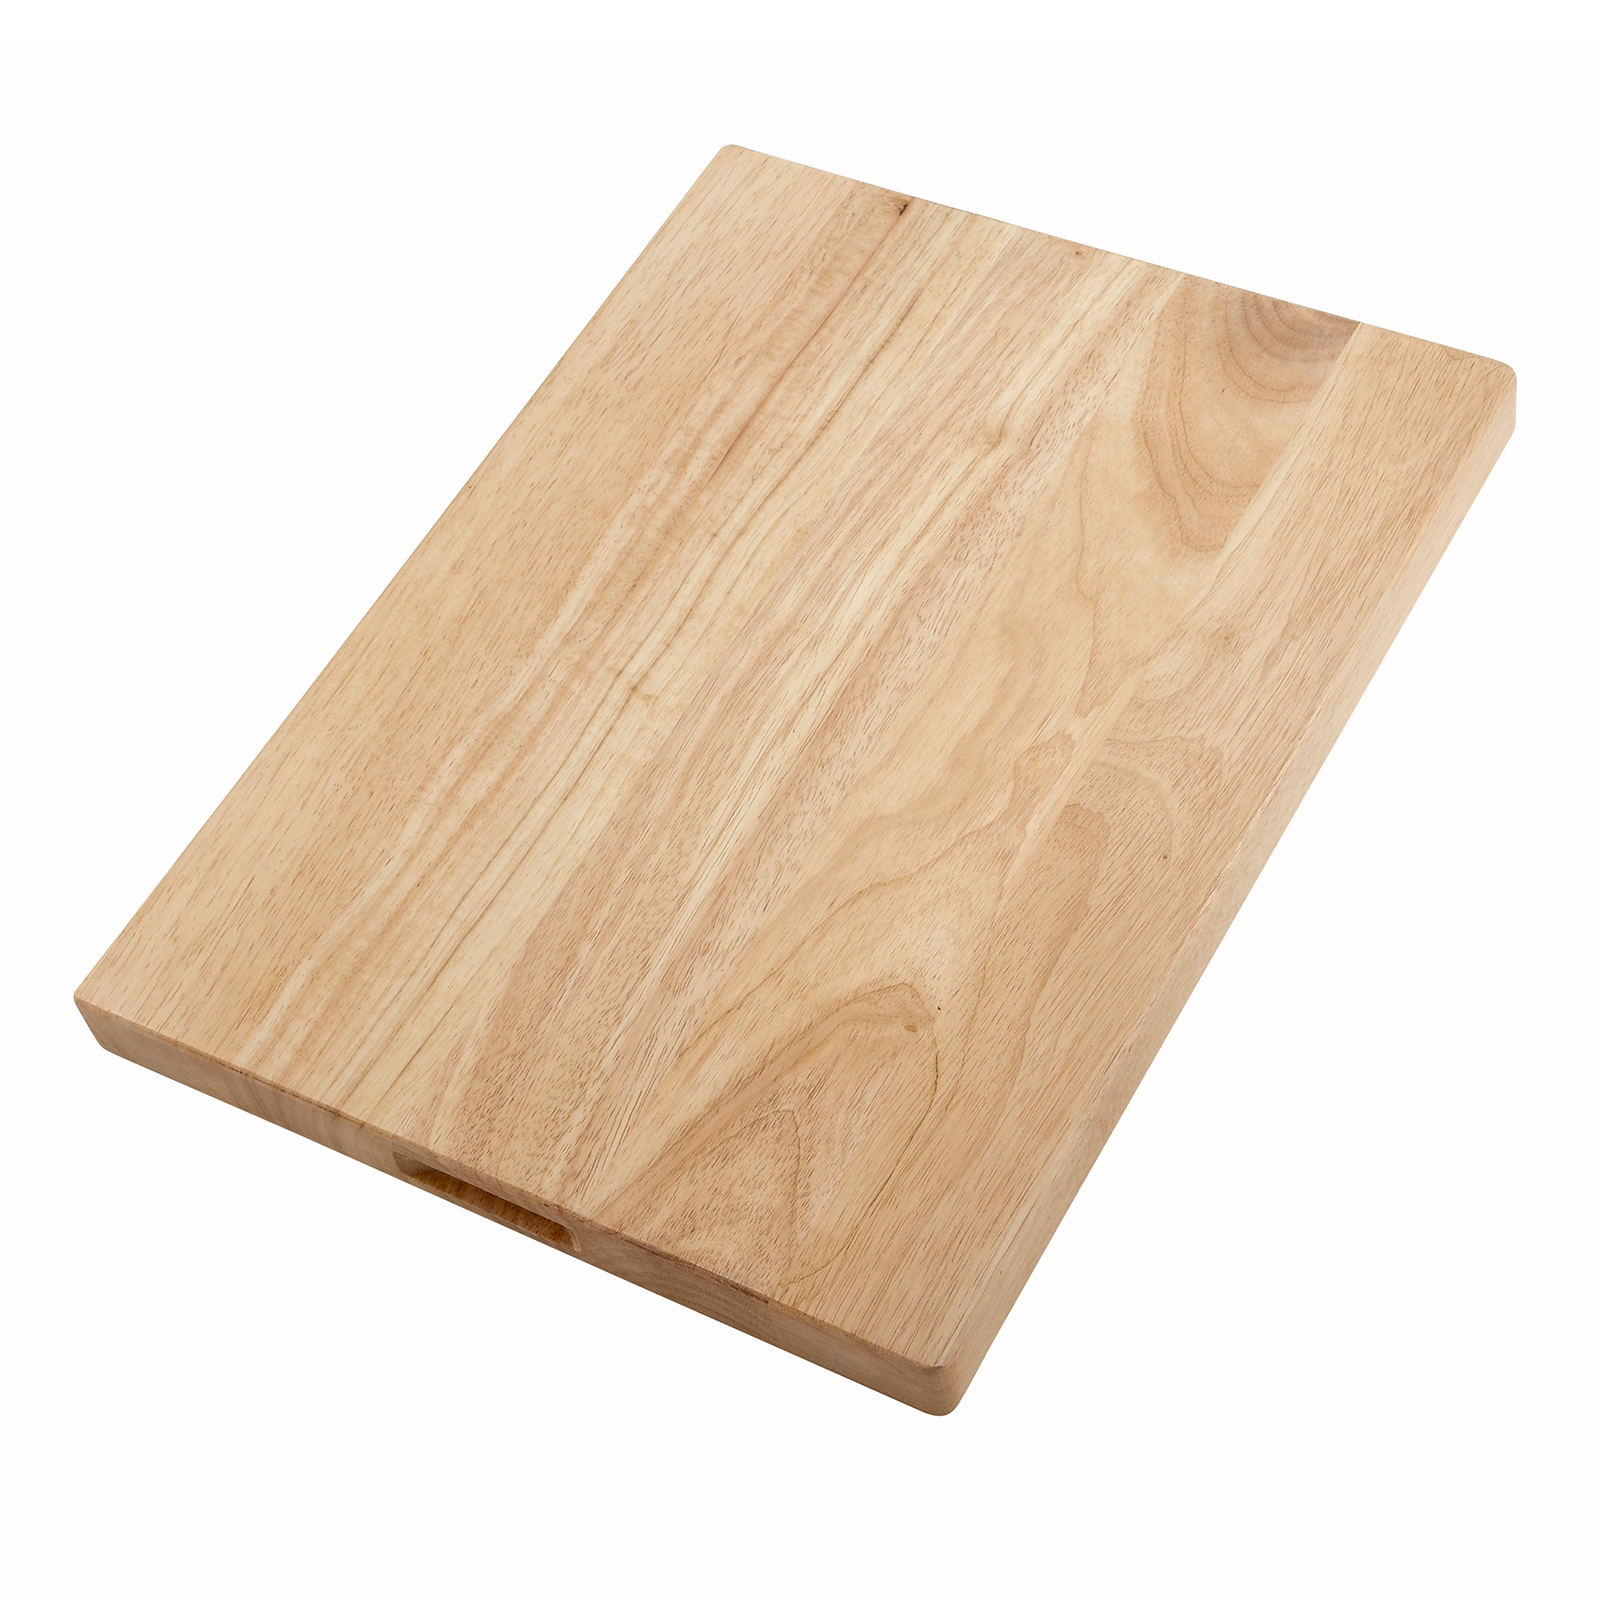 Winco WCB-1830 cutting board, wood